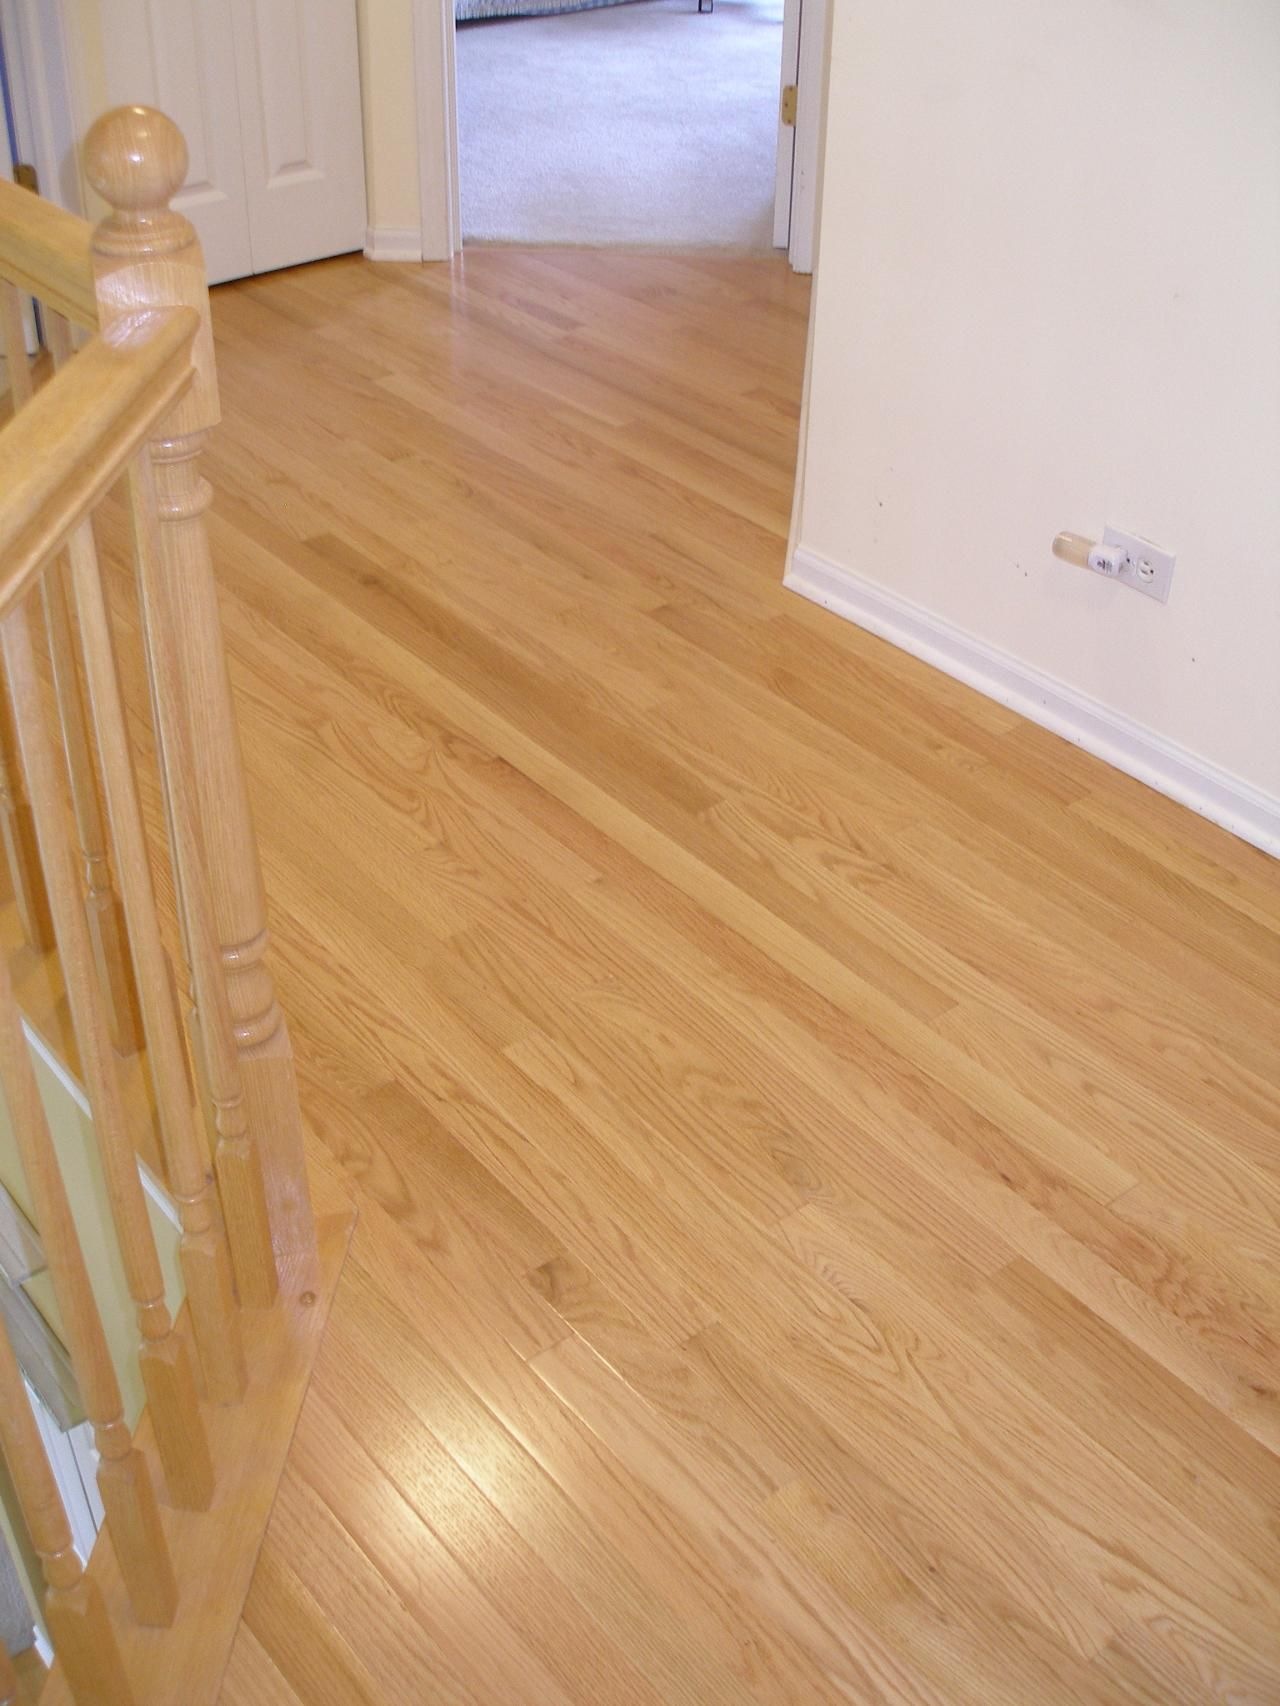 Wood Flooring White Trim Red Oak Flooring And Stairs Wood